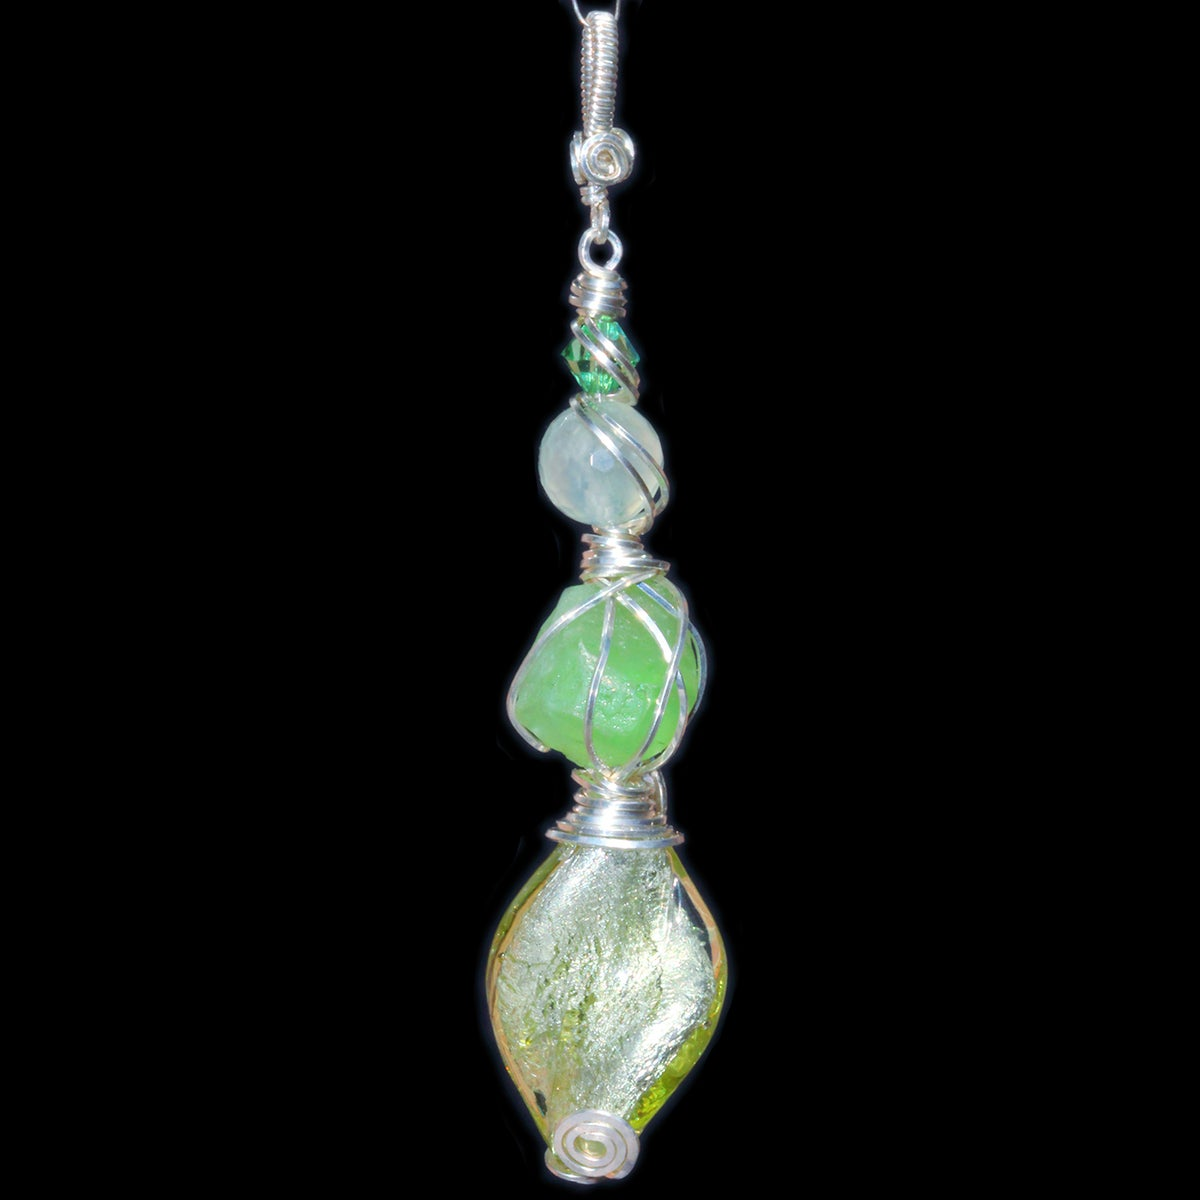 Peridot Crystal Handmade Pendant with Venetian Glass Foil Bead